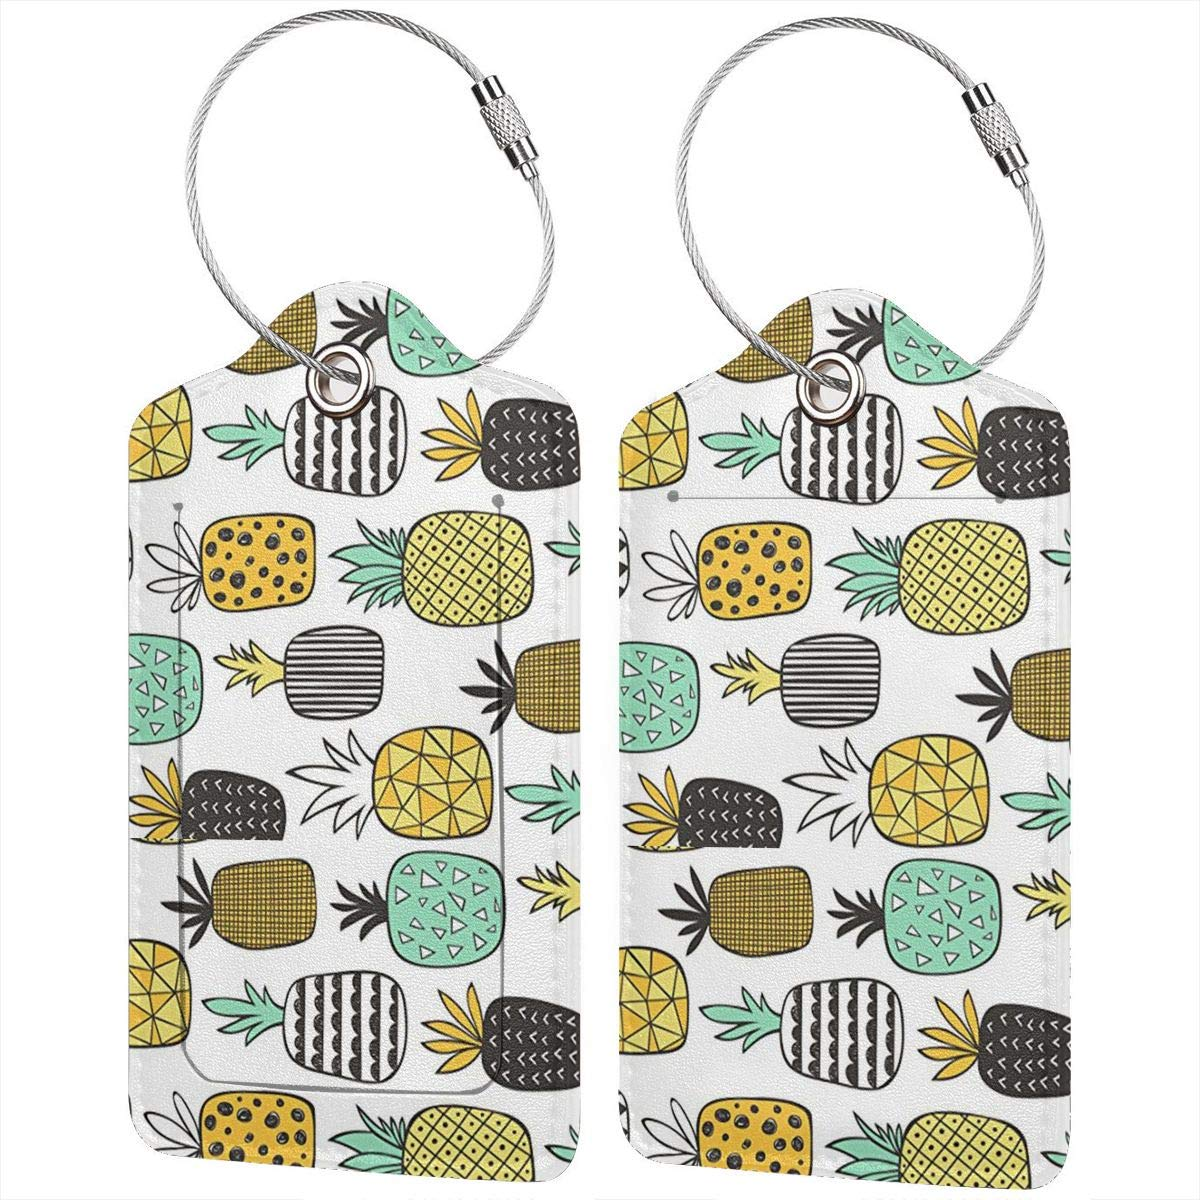 Key Tags for Instrument Baggage Bag Gift Pineapple Geometric On White 2.7 x 4.6 Blank Tag Leather Luggage Tags Full Privacy Cover and Stainless Steel Loop 1 2 4 Pcs Set